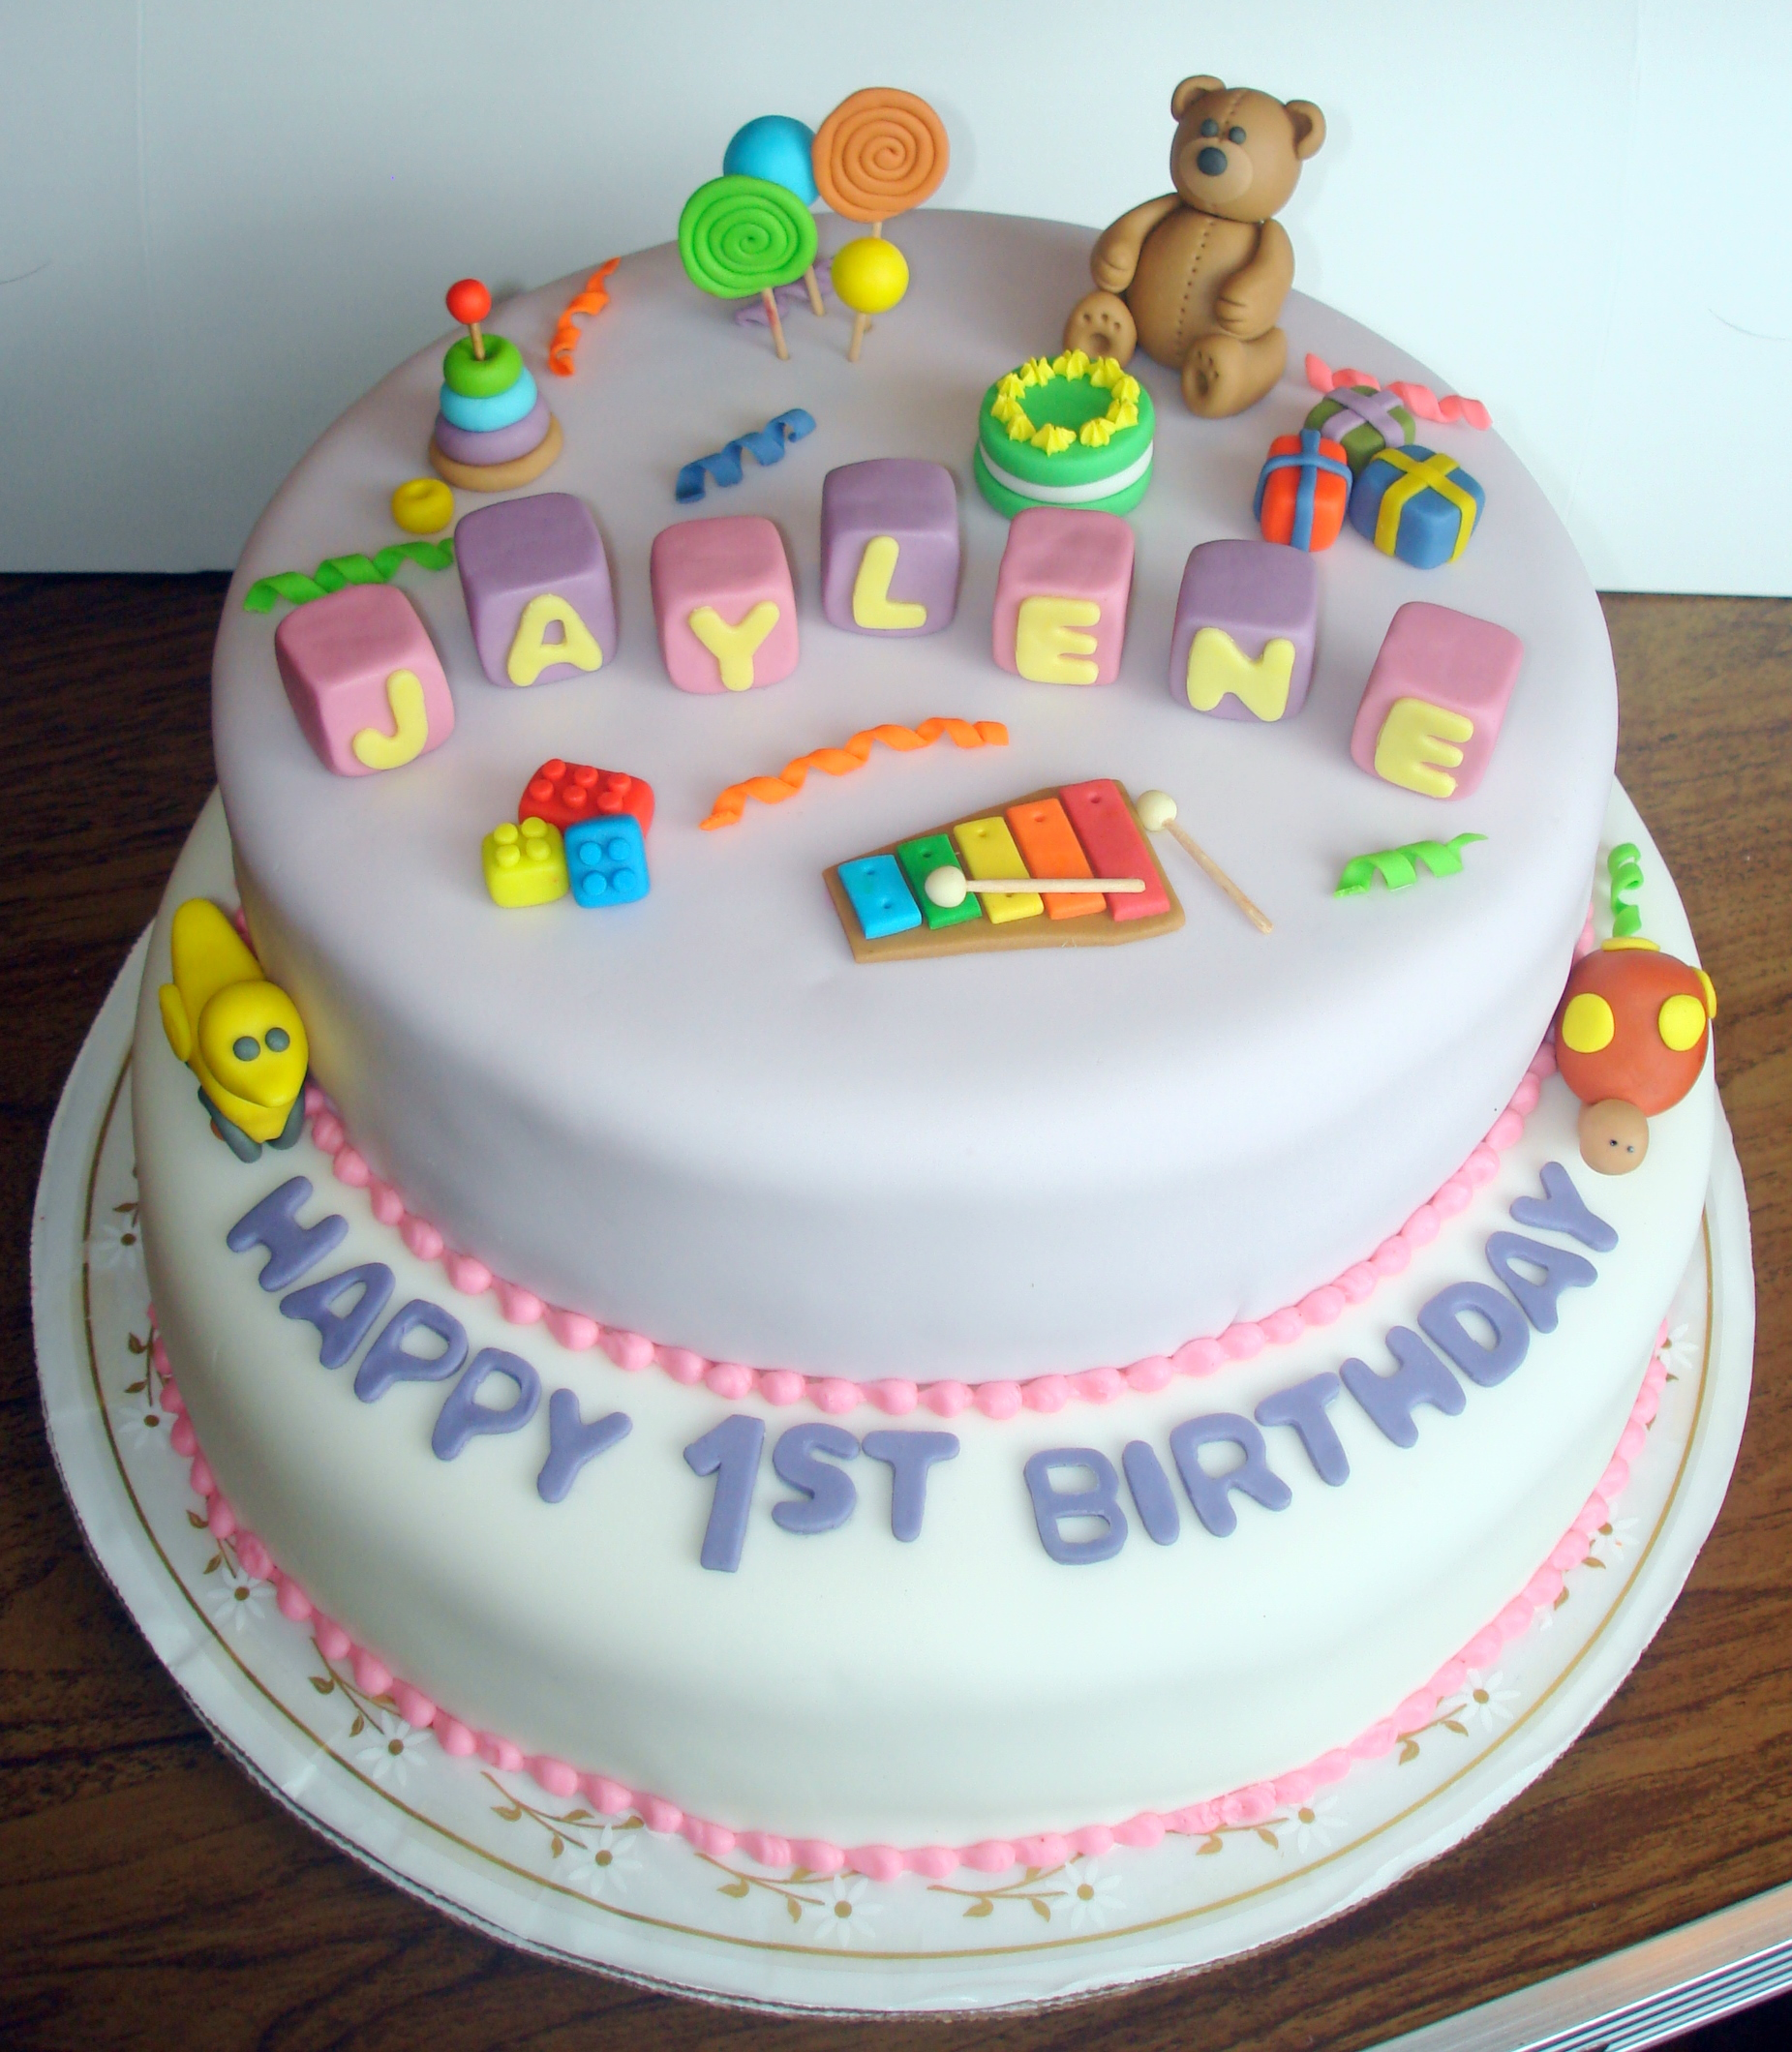 Birthday Cake Design For A Baby Boy : Baby s First Birthday Cake   ms.Tapioca